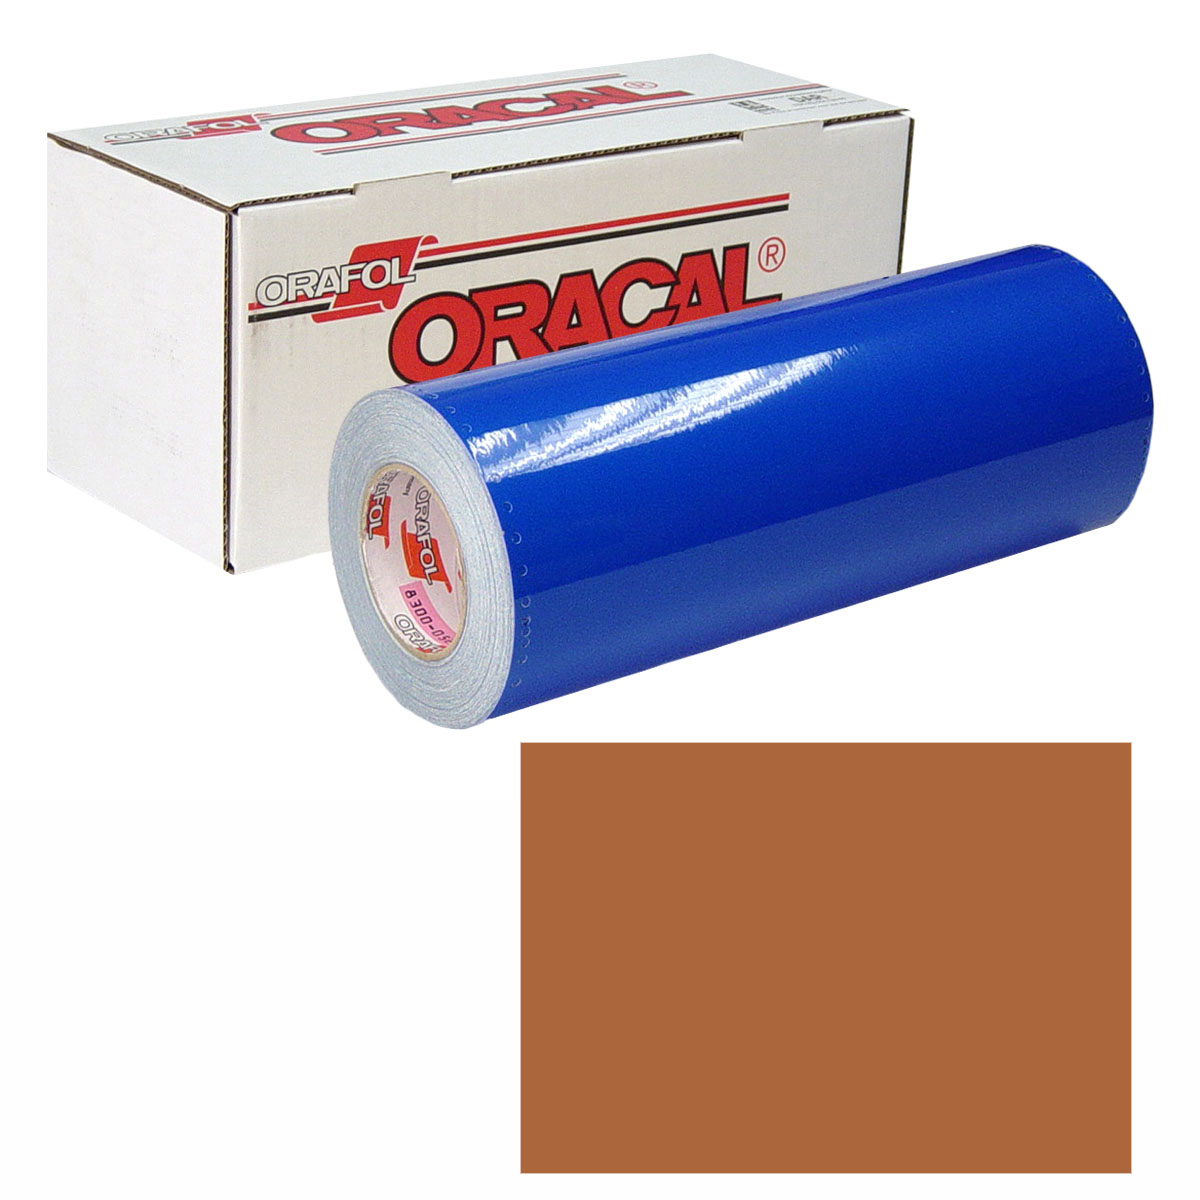 ORACAL 631 Unp 30In X 50Yd 092 Copper Met